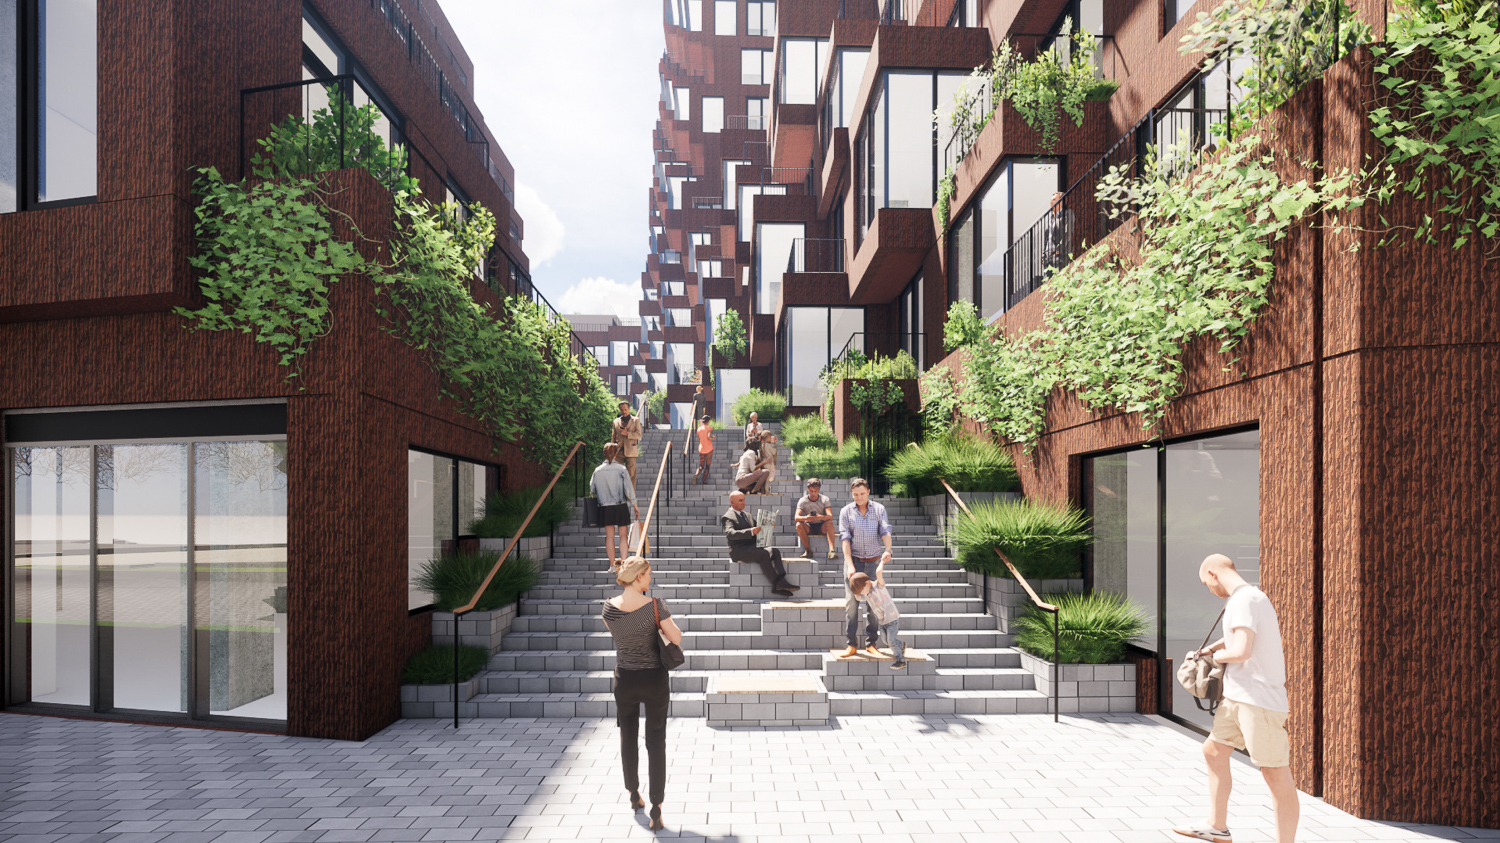 The Canyon at Parcel A courtyard street life, design by MVRDV, rendering by pixelflakes